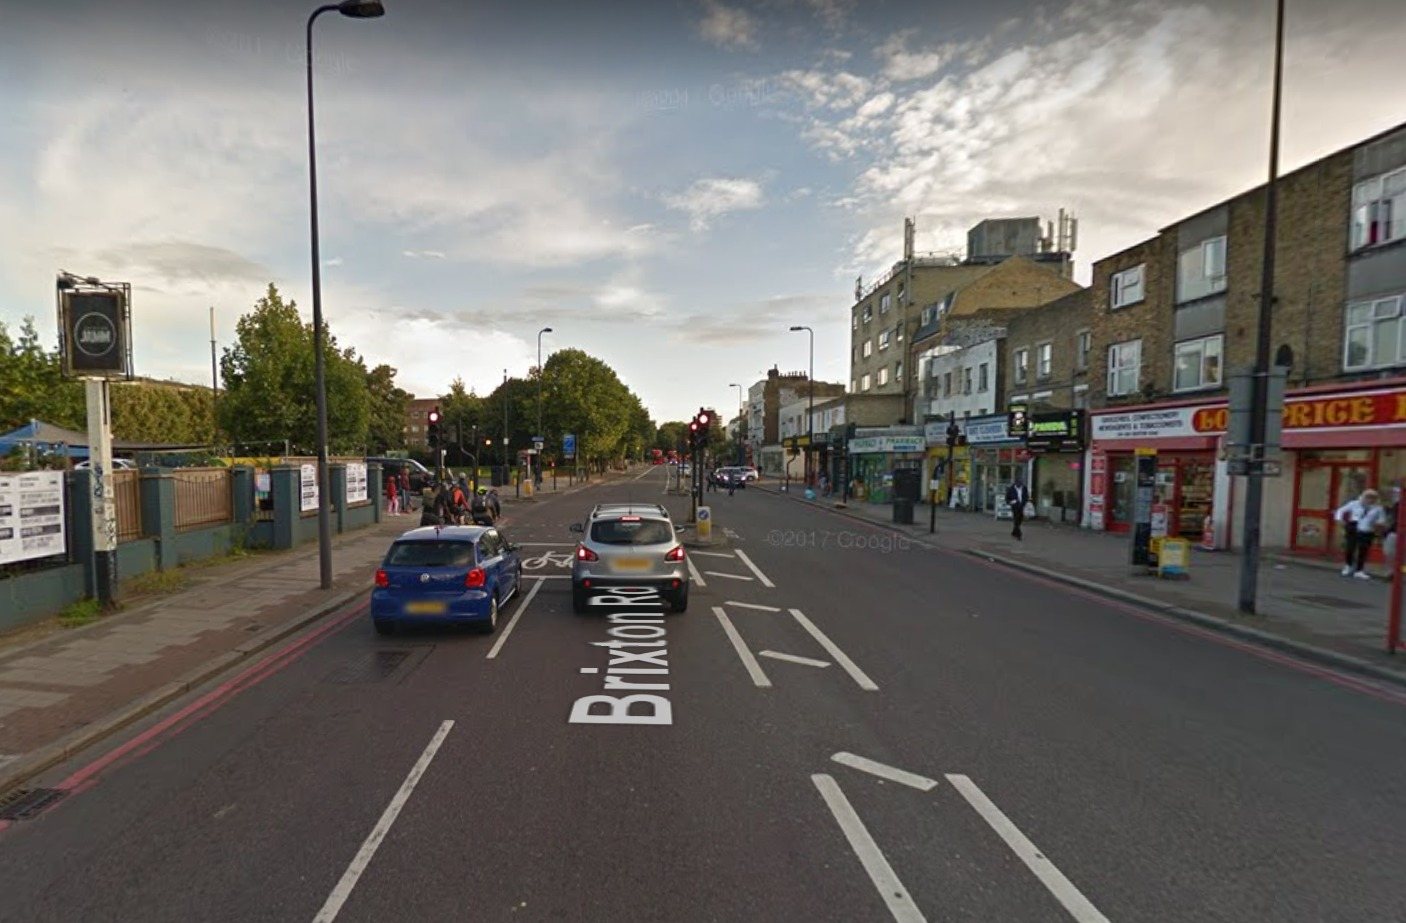 Brixton Road is one of the most polluted roads in London.